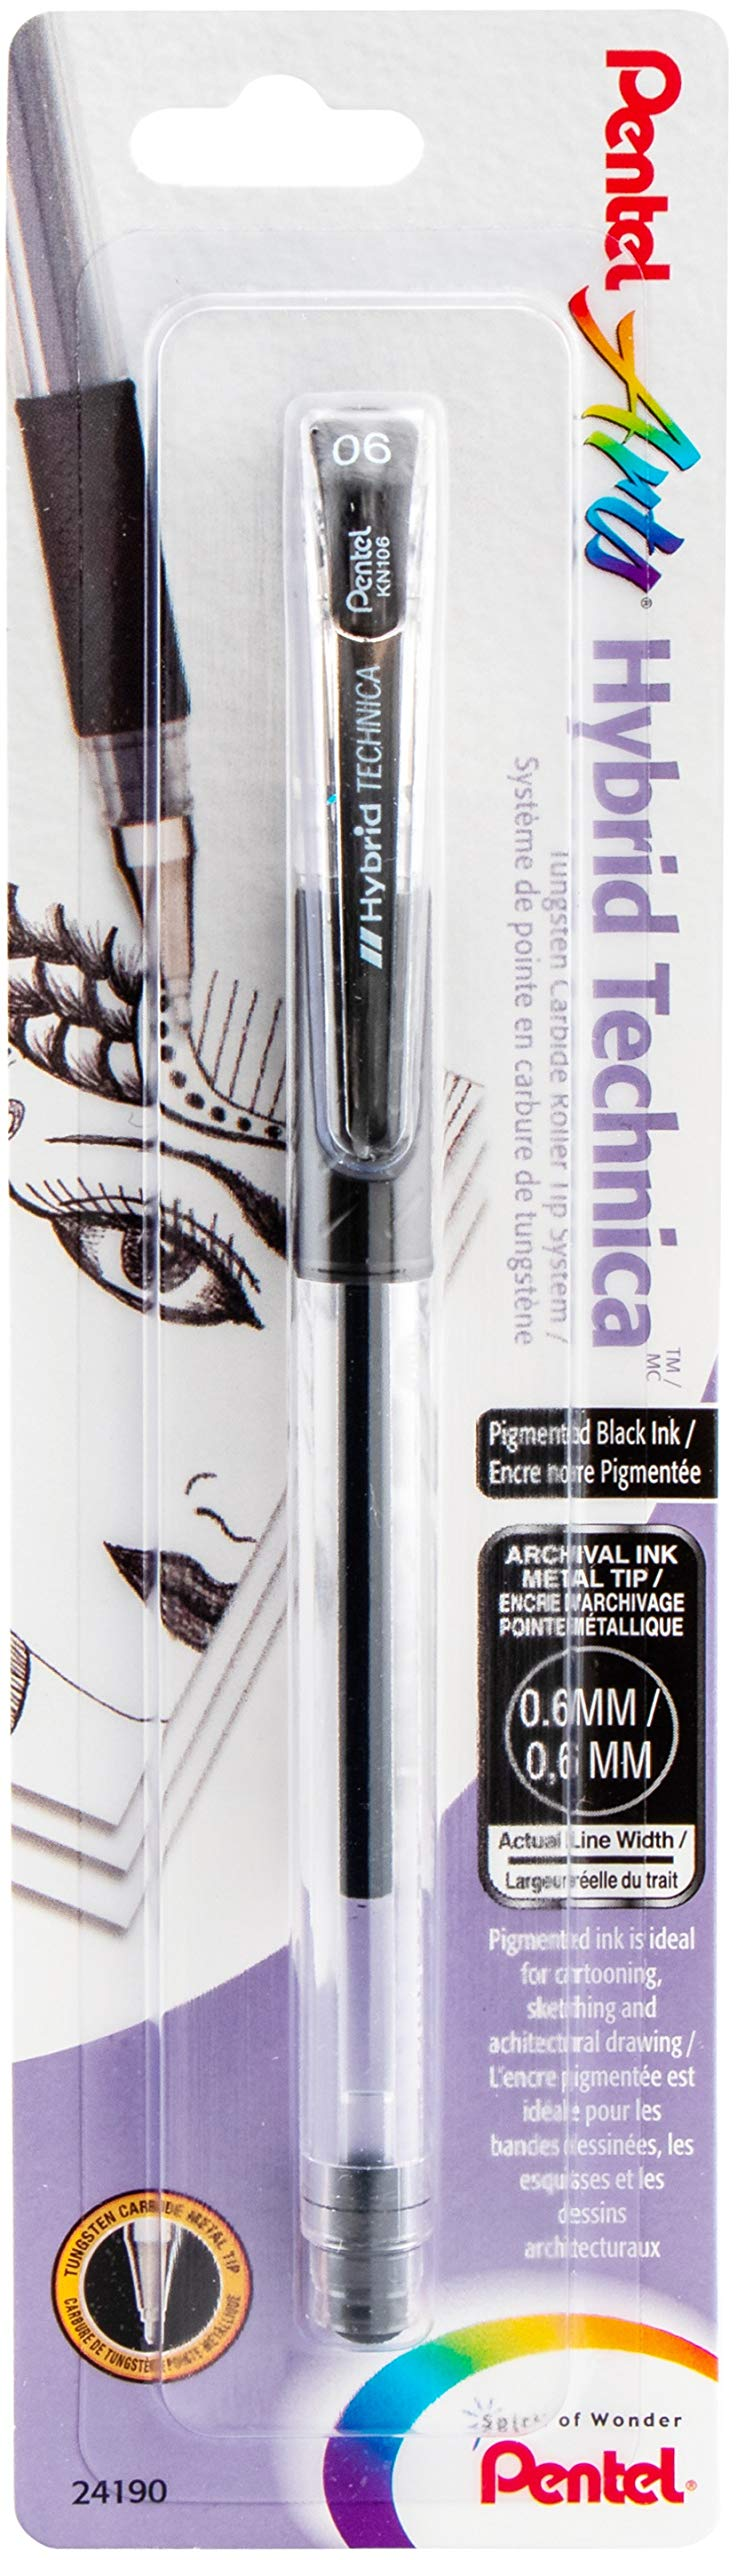 Pentel Arts Hybrid Technica 0.6 mm Pen, Fine Point, Black Ink, 1 Pack (KN106BPA)